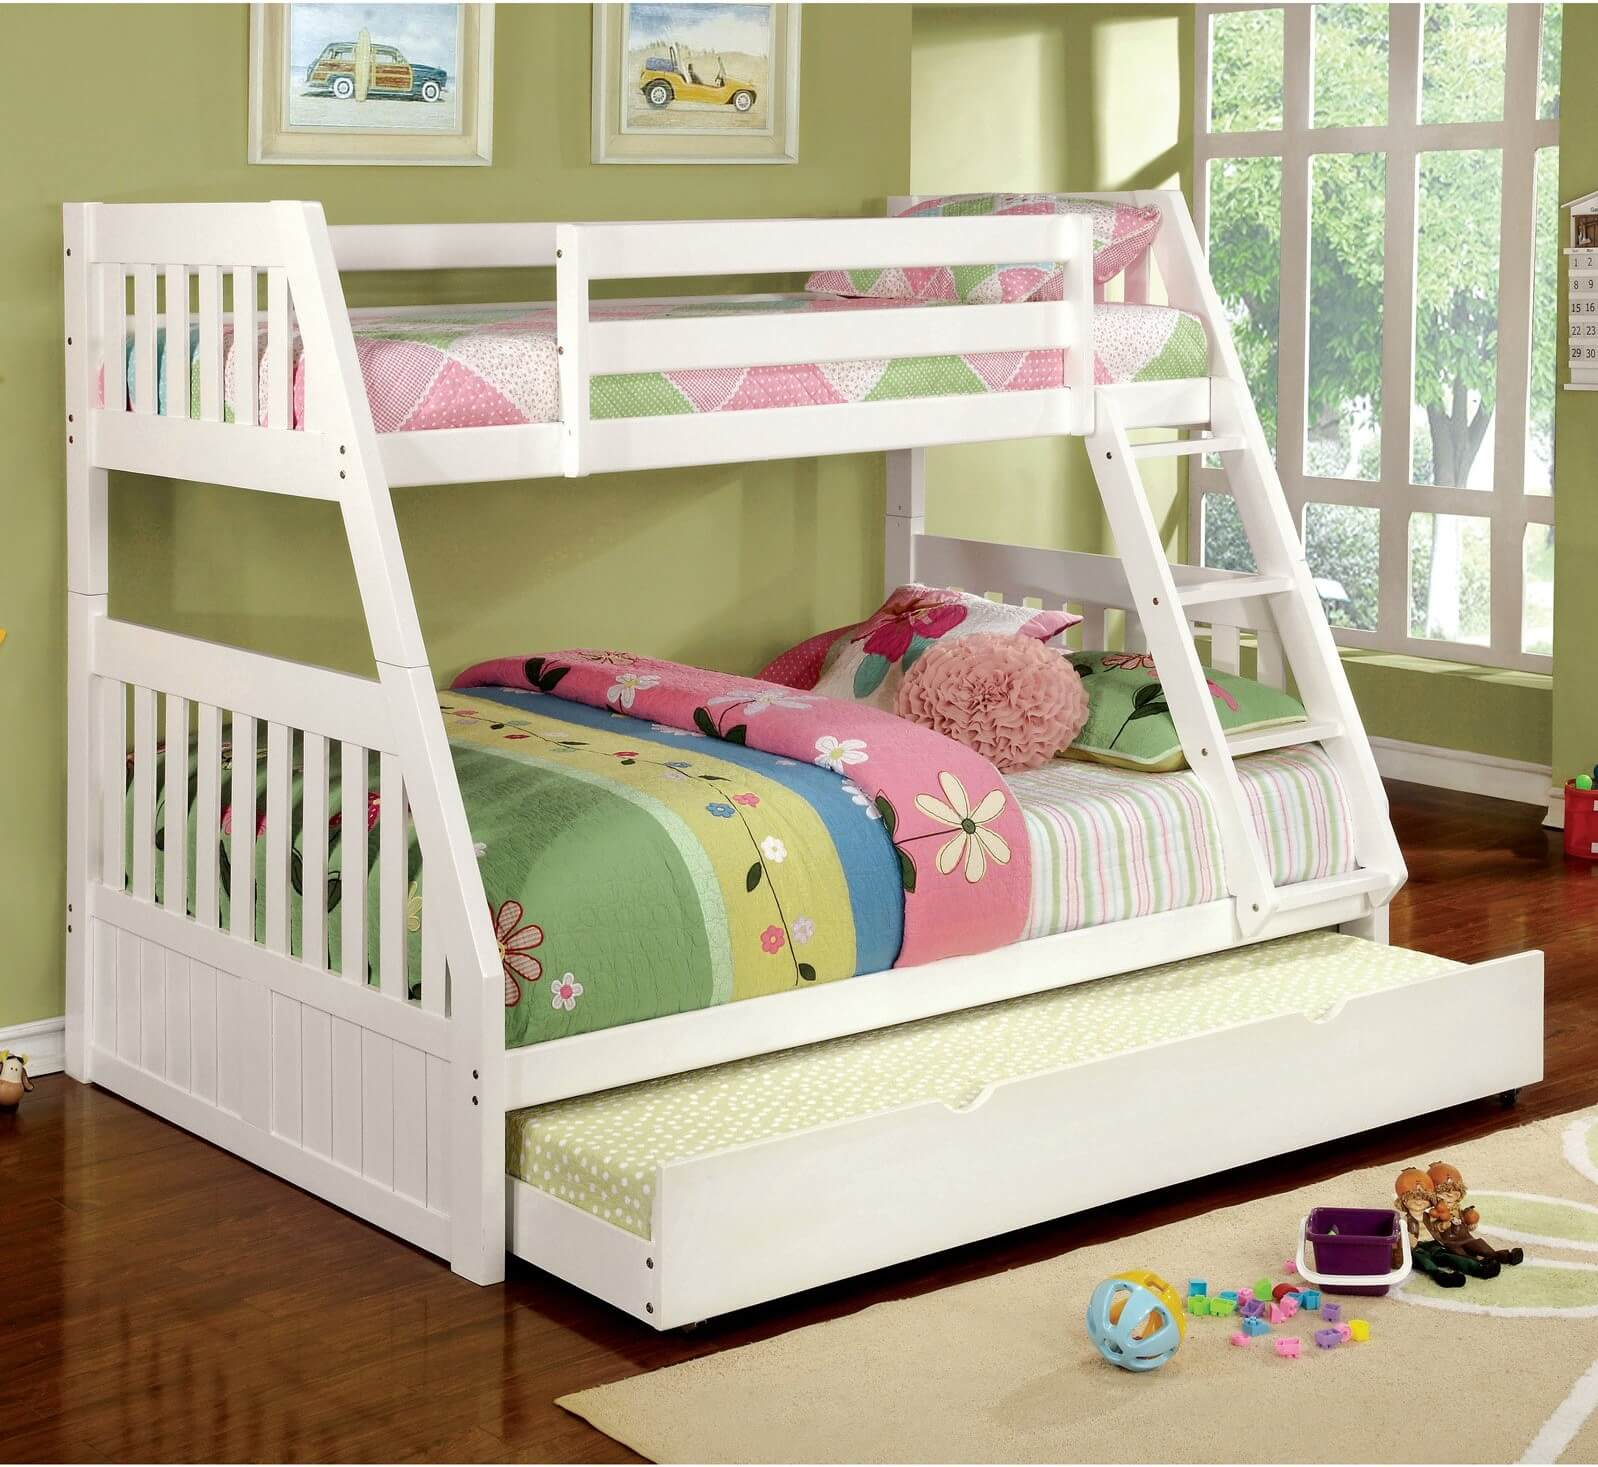 Advantages And Drawbacks Of Strong Wooden Loft Bed With Stairs Twin over Full Bunk Bed with Trundle Option